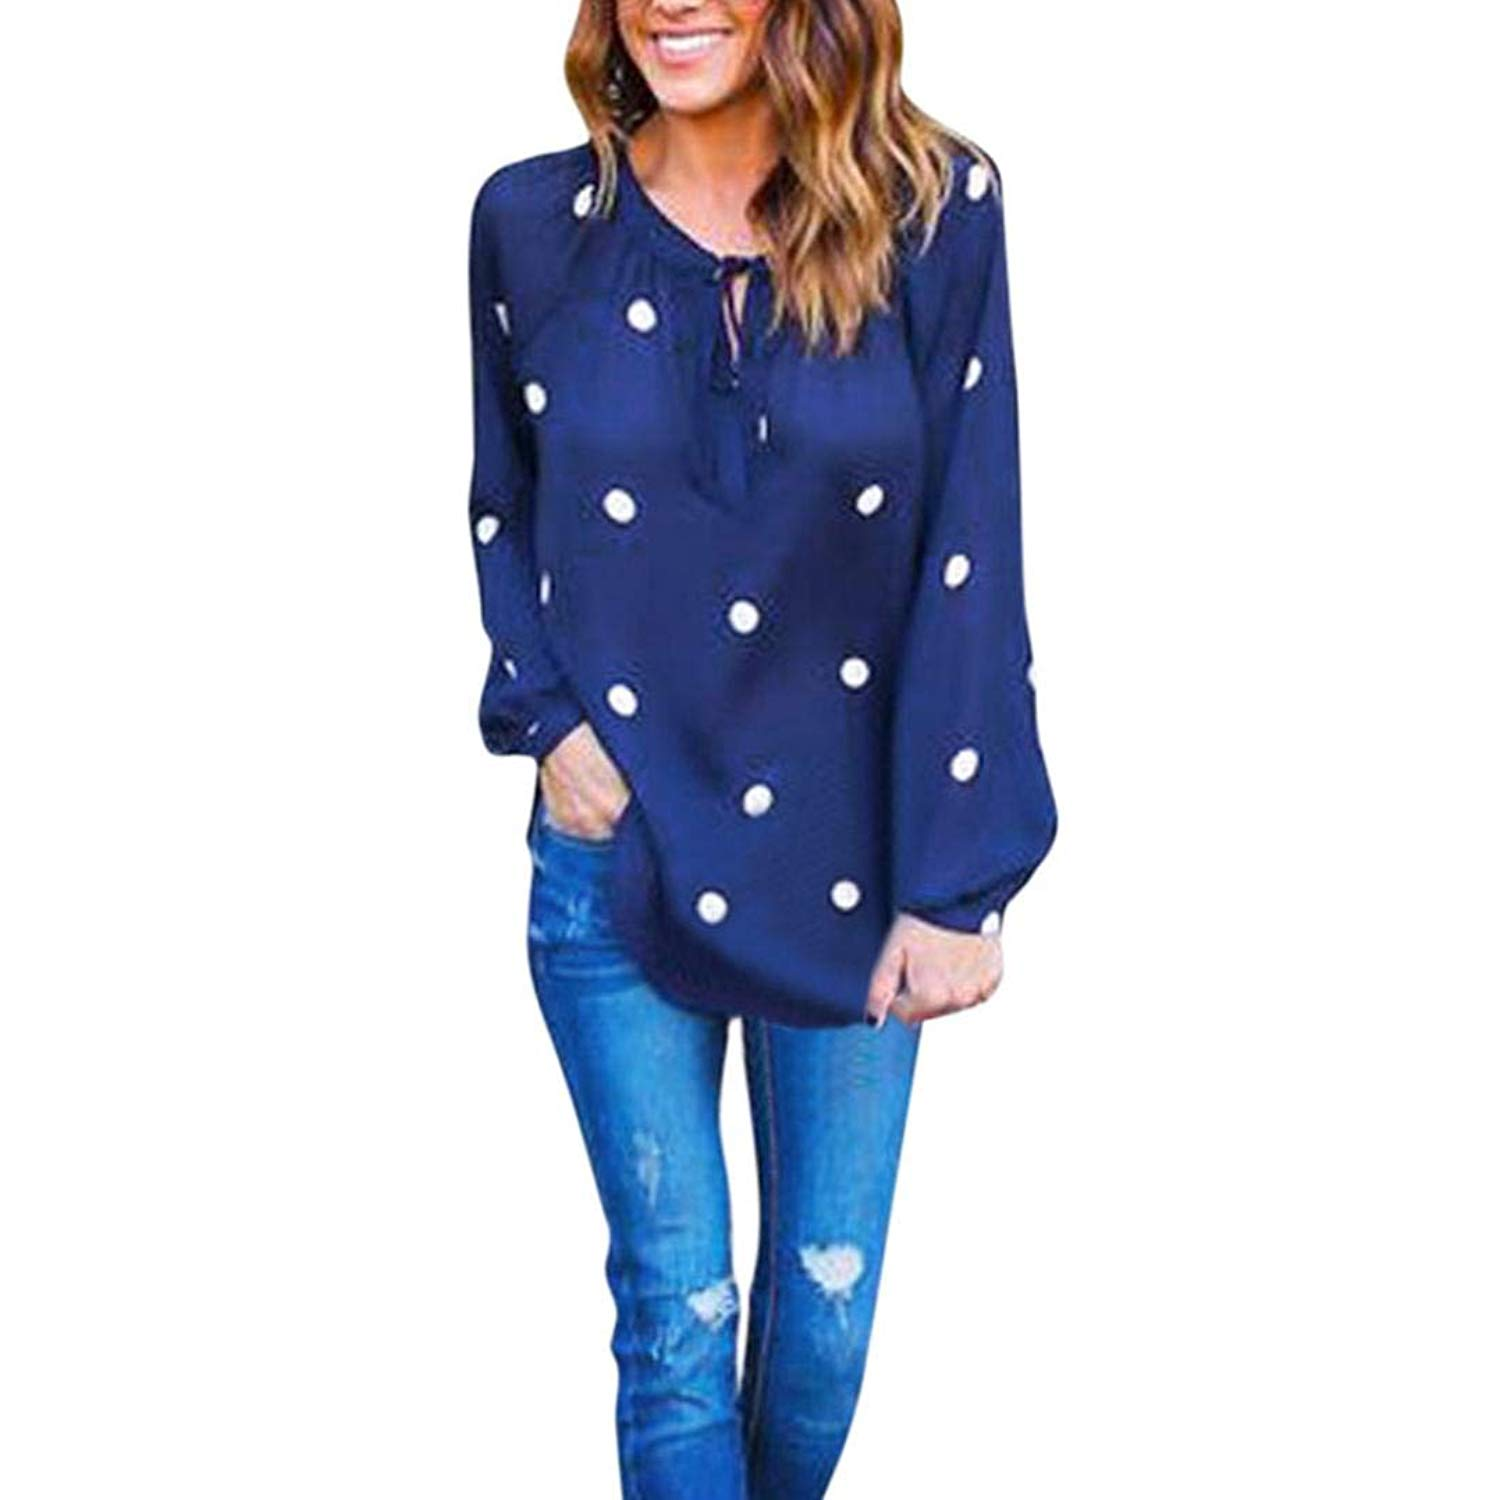 Leewos Clearance Sale! Autumn Party Blouse,Women Fashion Dots Printed Chiffon Tops Sexy V Neck Long Sleeve Bandage T-Shirts